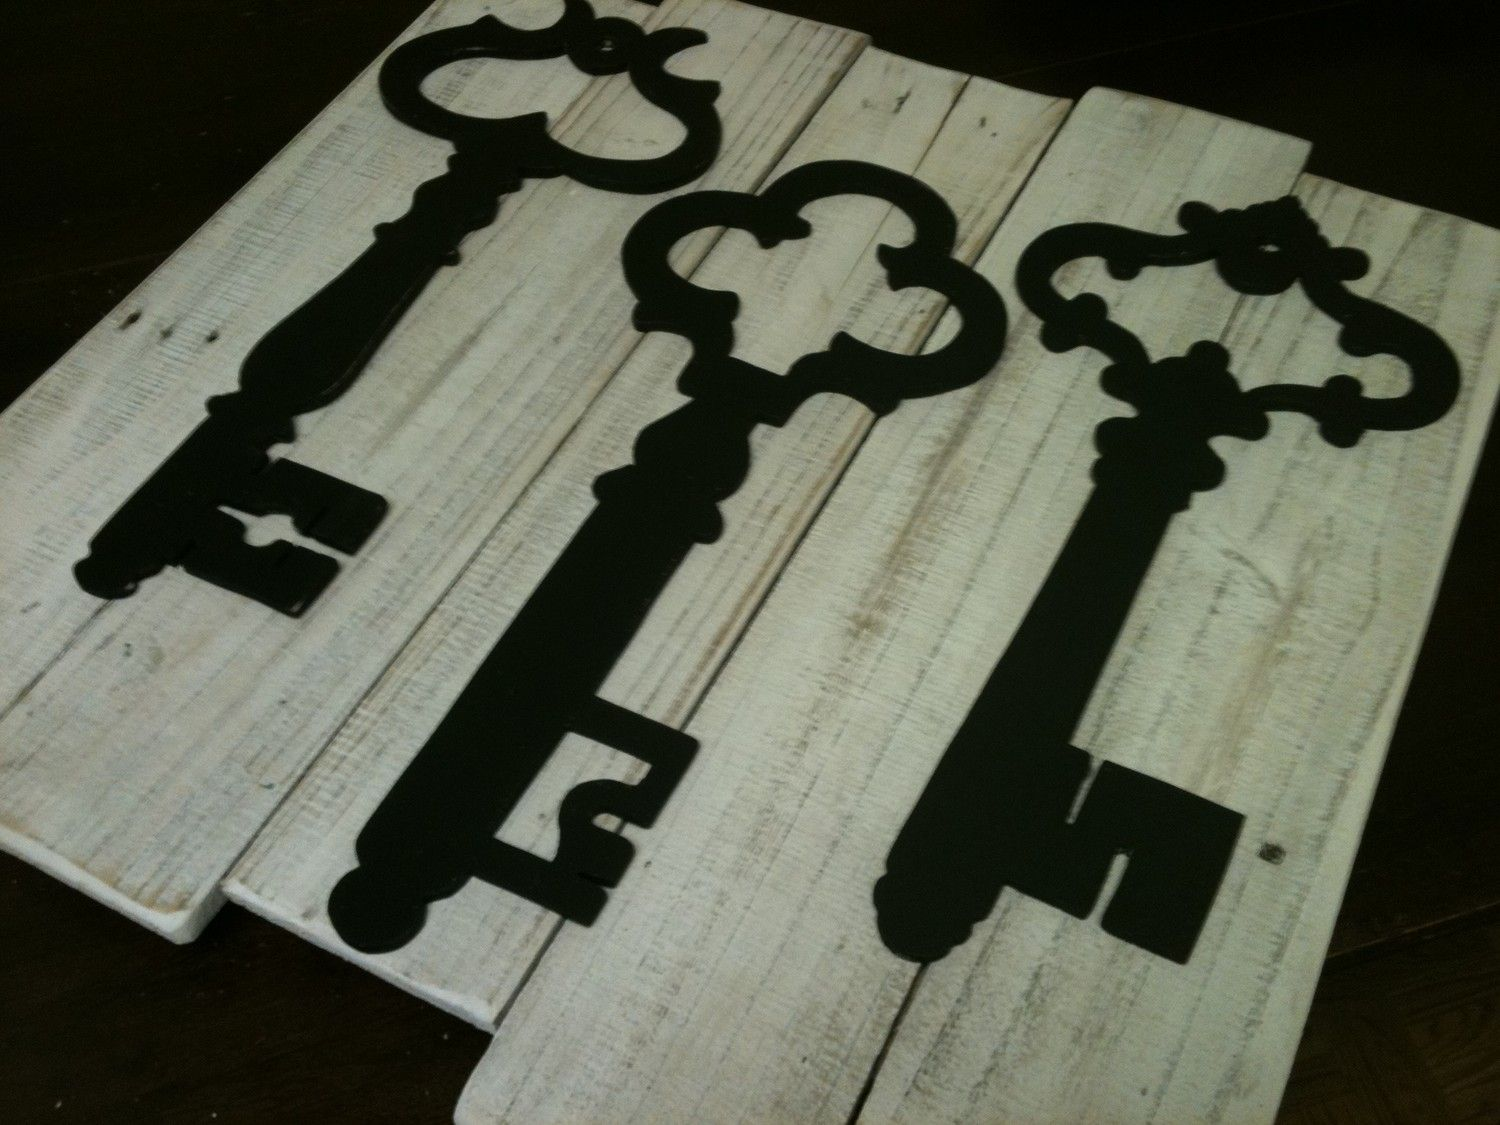 White Washed Vintage Inspired Skeleton Key Wall Decor   Upcycled Reclaimed  Wood Planks   Art Decor   Pottery Barn Inspired   Home Decor   Rustic    Shabby ...